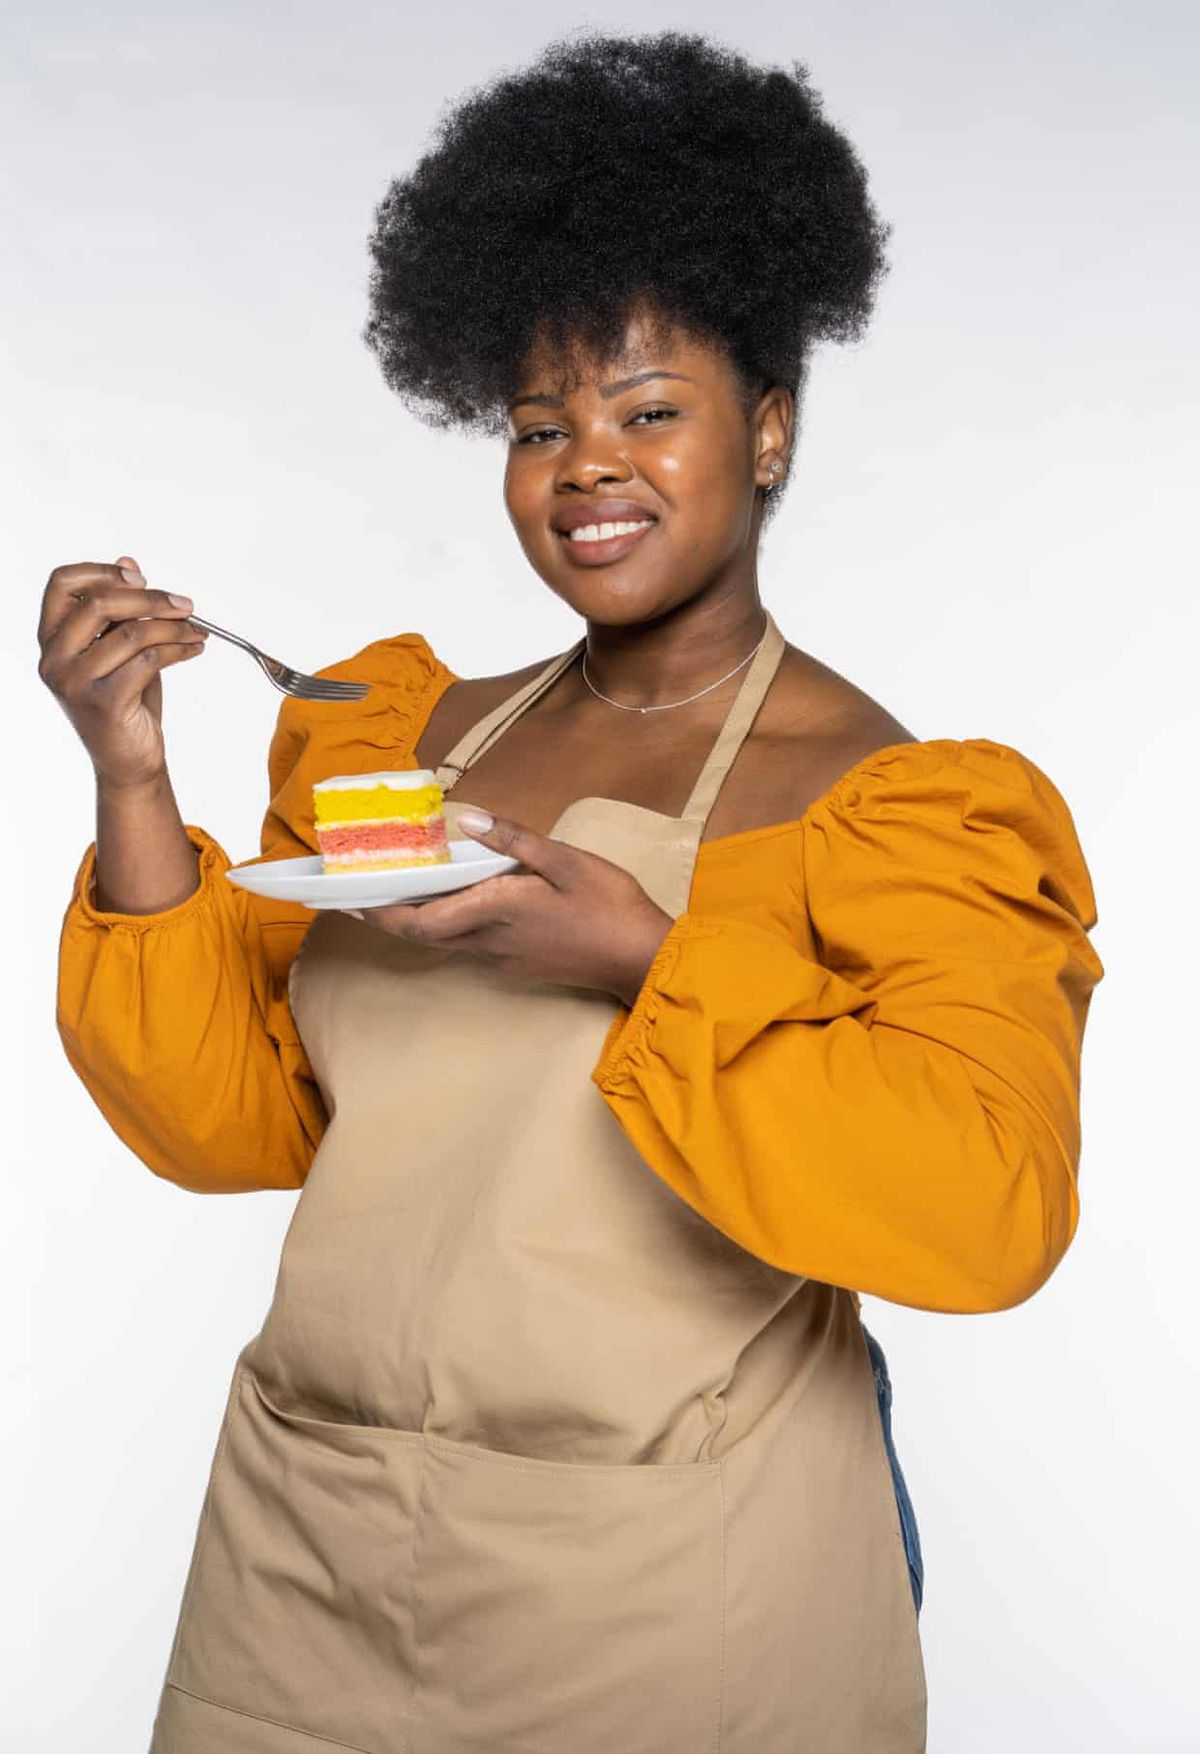 Great British Bake Off 2021 contestant Rochica, who will compete on GBBO this year